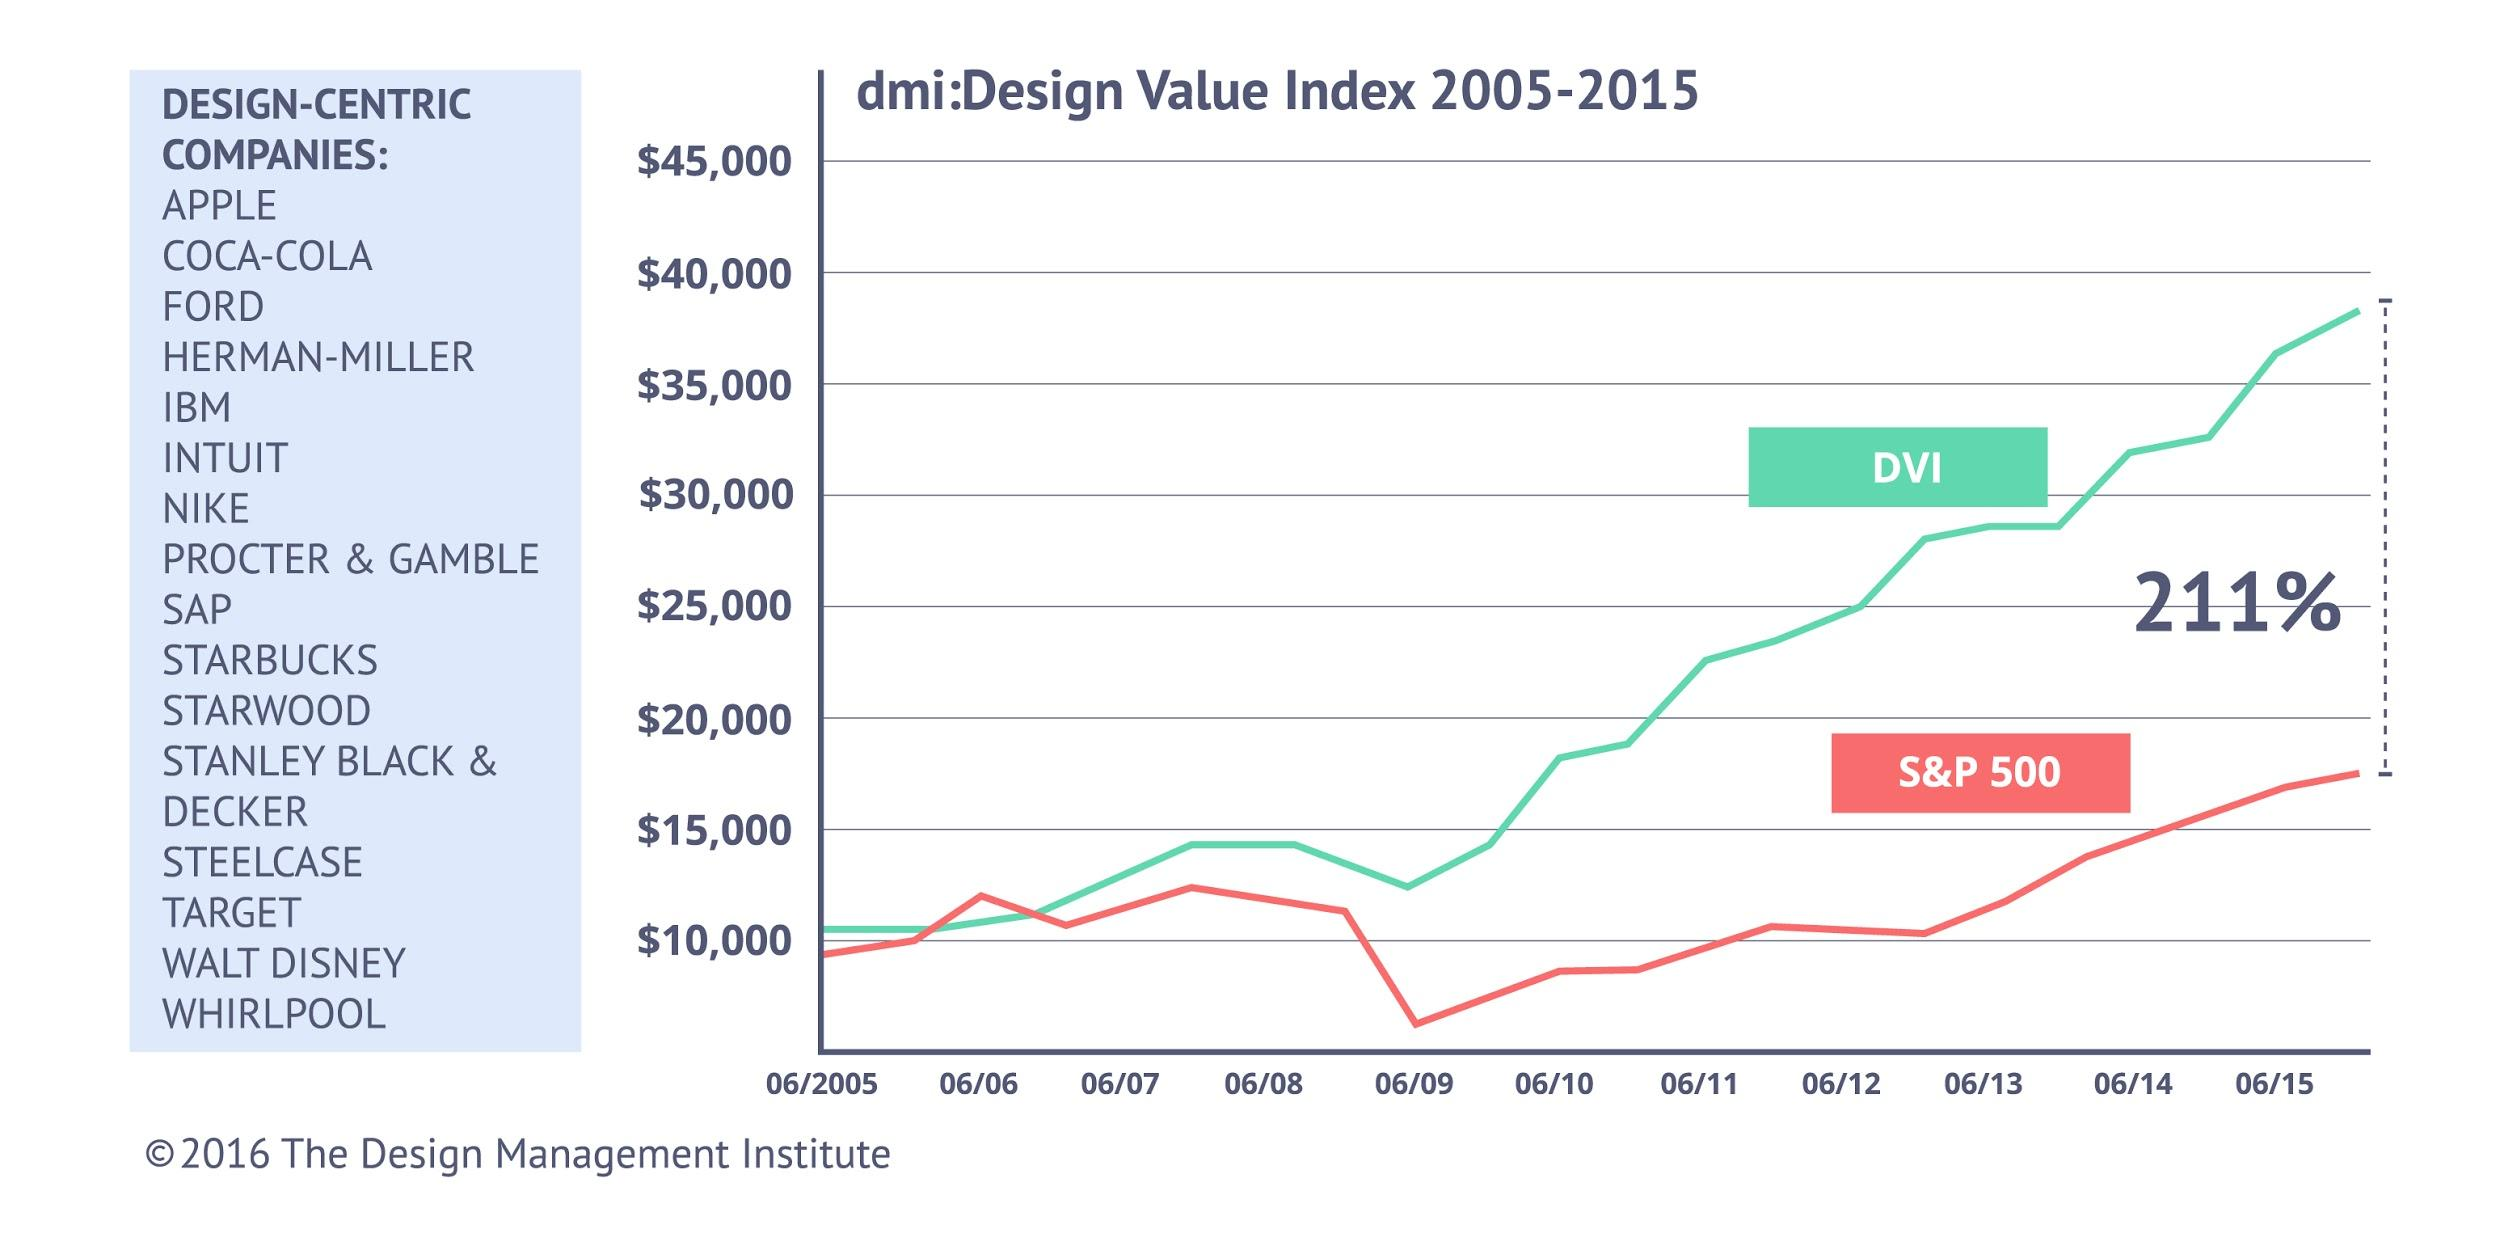 S&P 500 vs design-centric companies' design value index